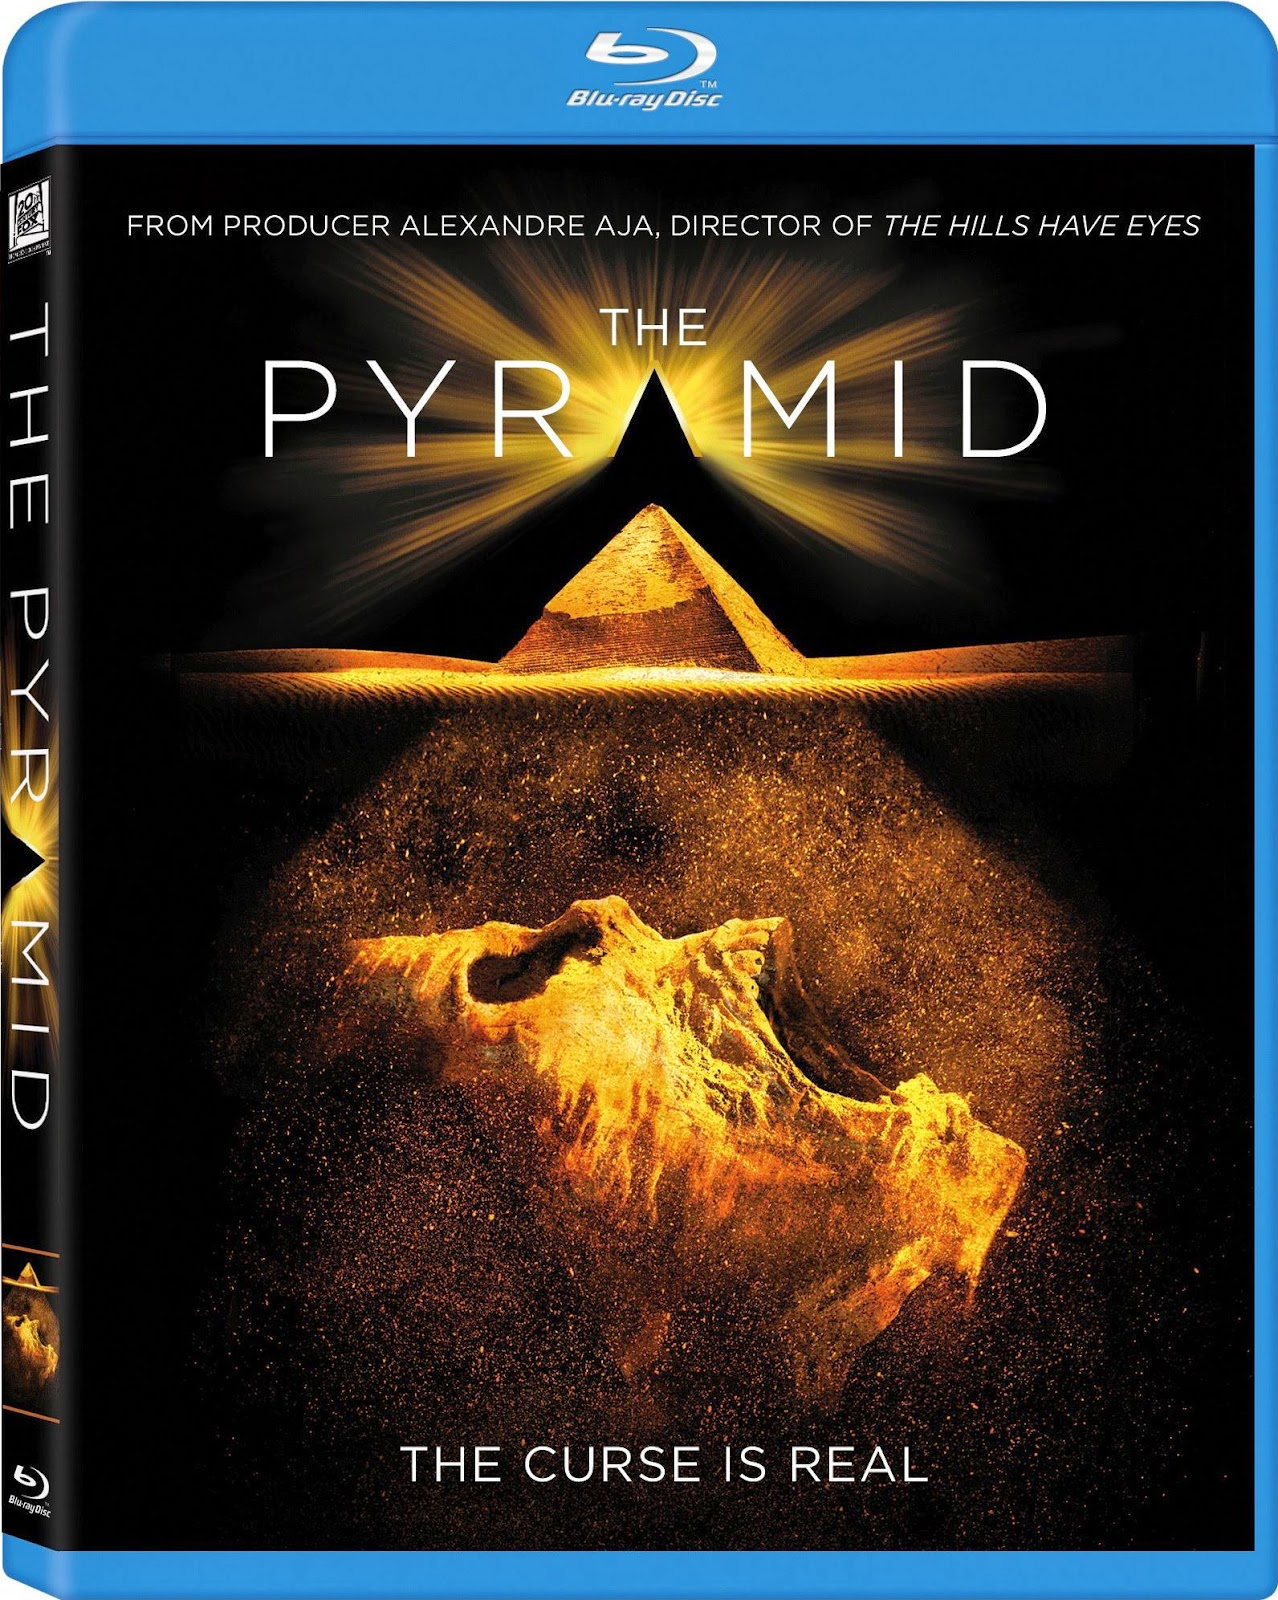 La Piramide (2014) 1080p BD25 Cover Caratula Bluray